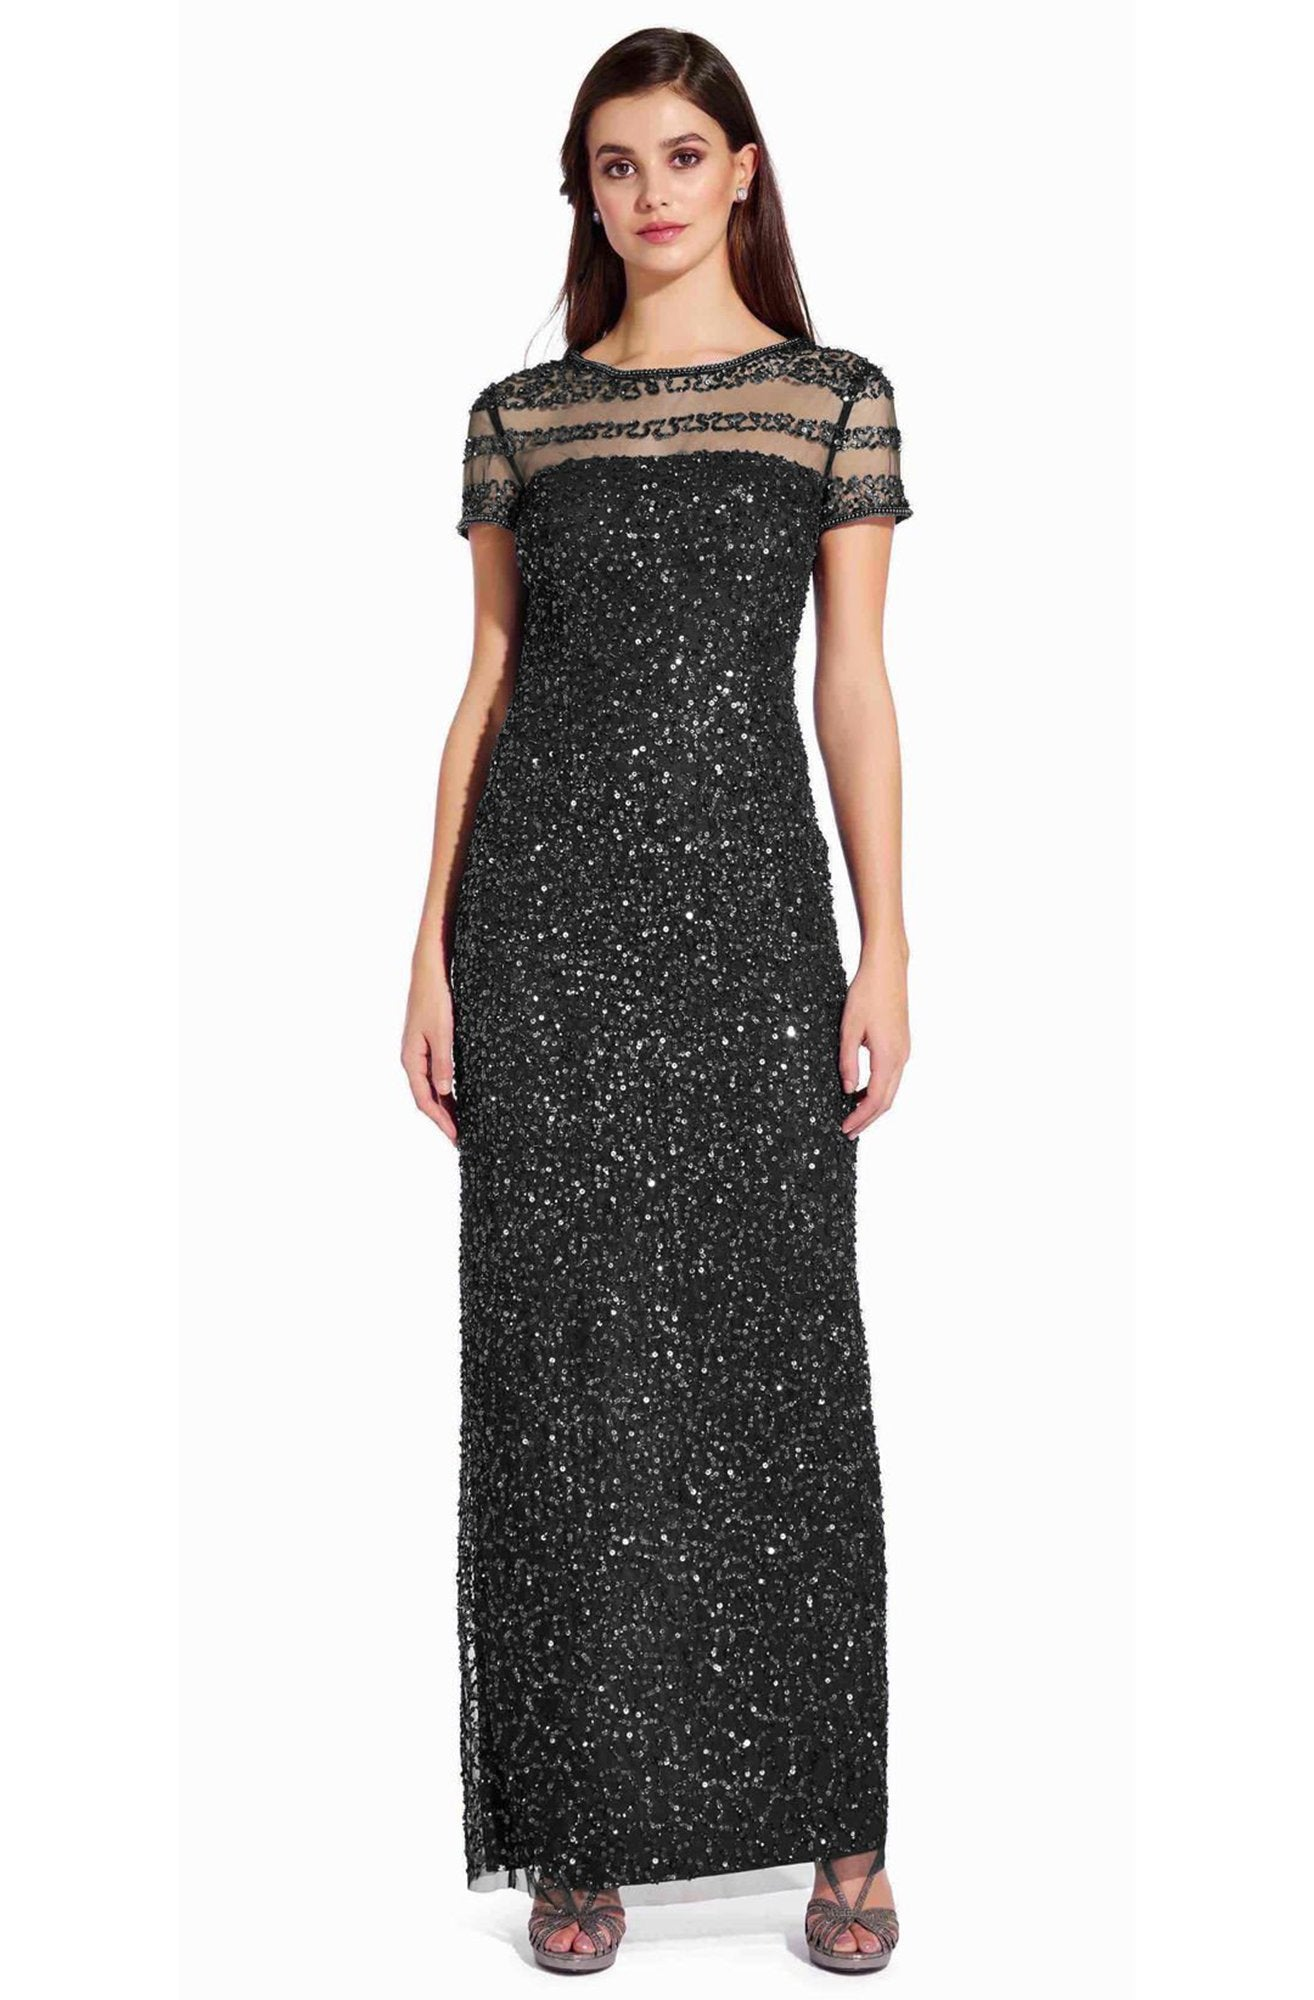 Adrianna Papell - AP1E205064 Short Sleeve Sheer Shoulders Sequin Dress In Black